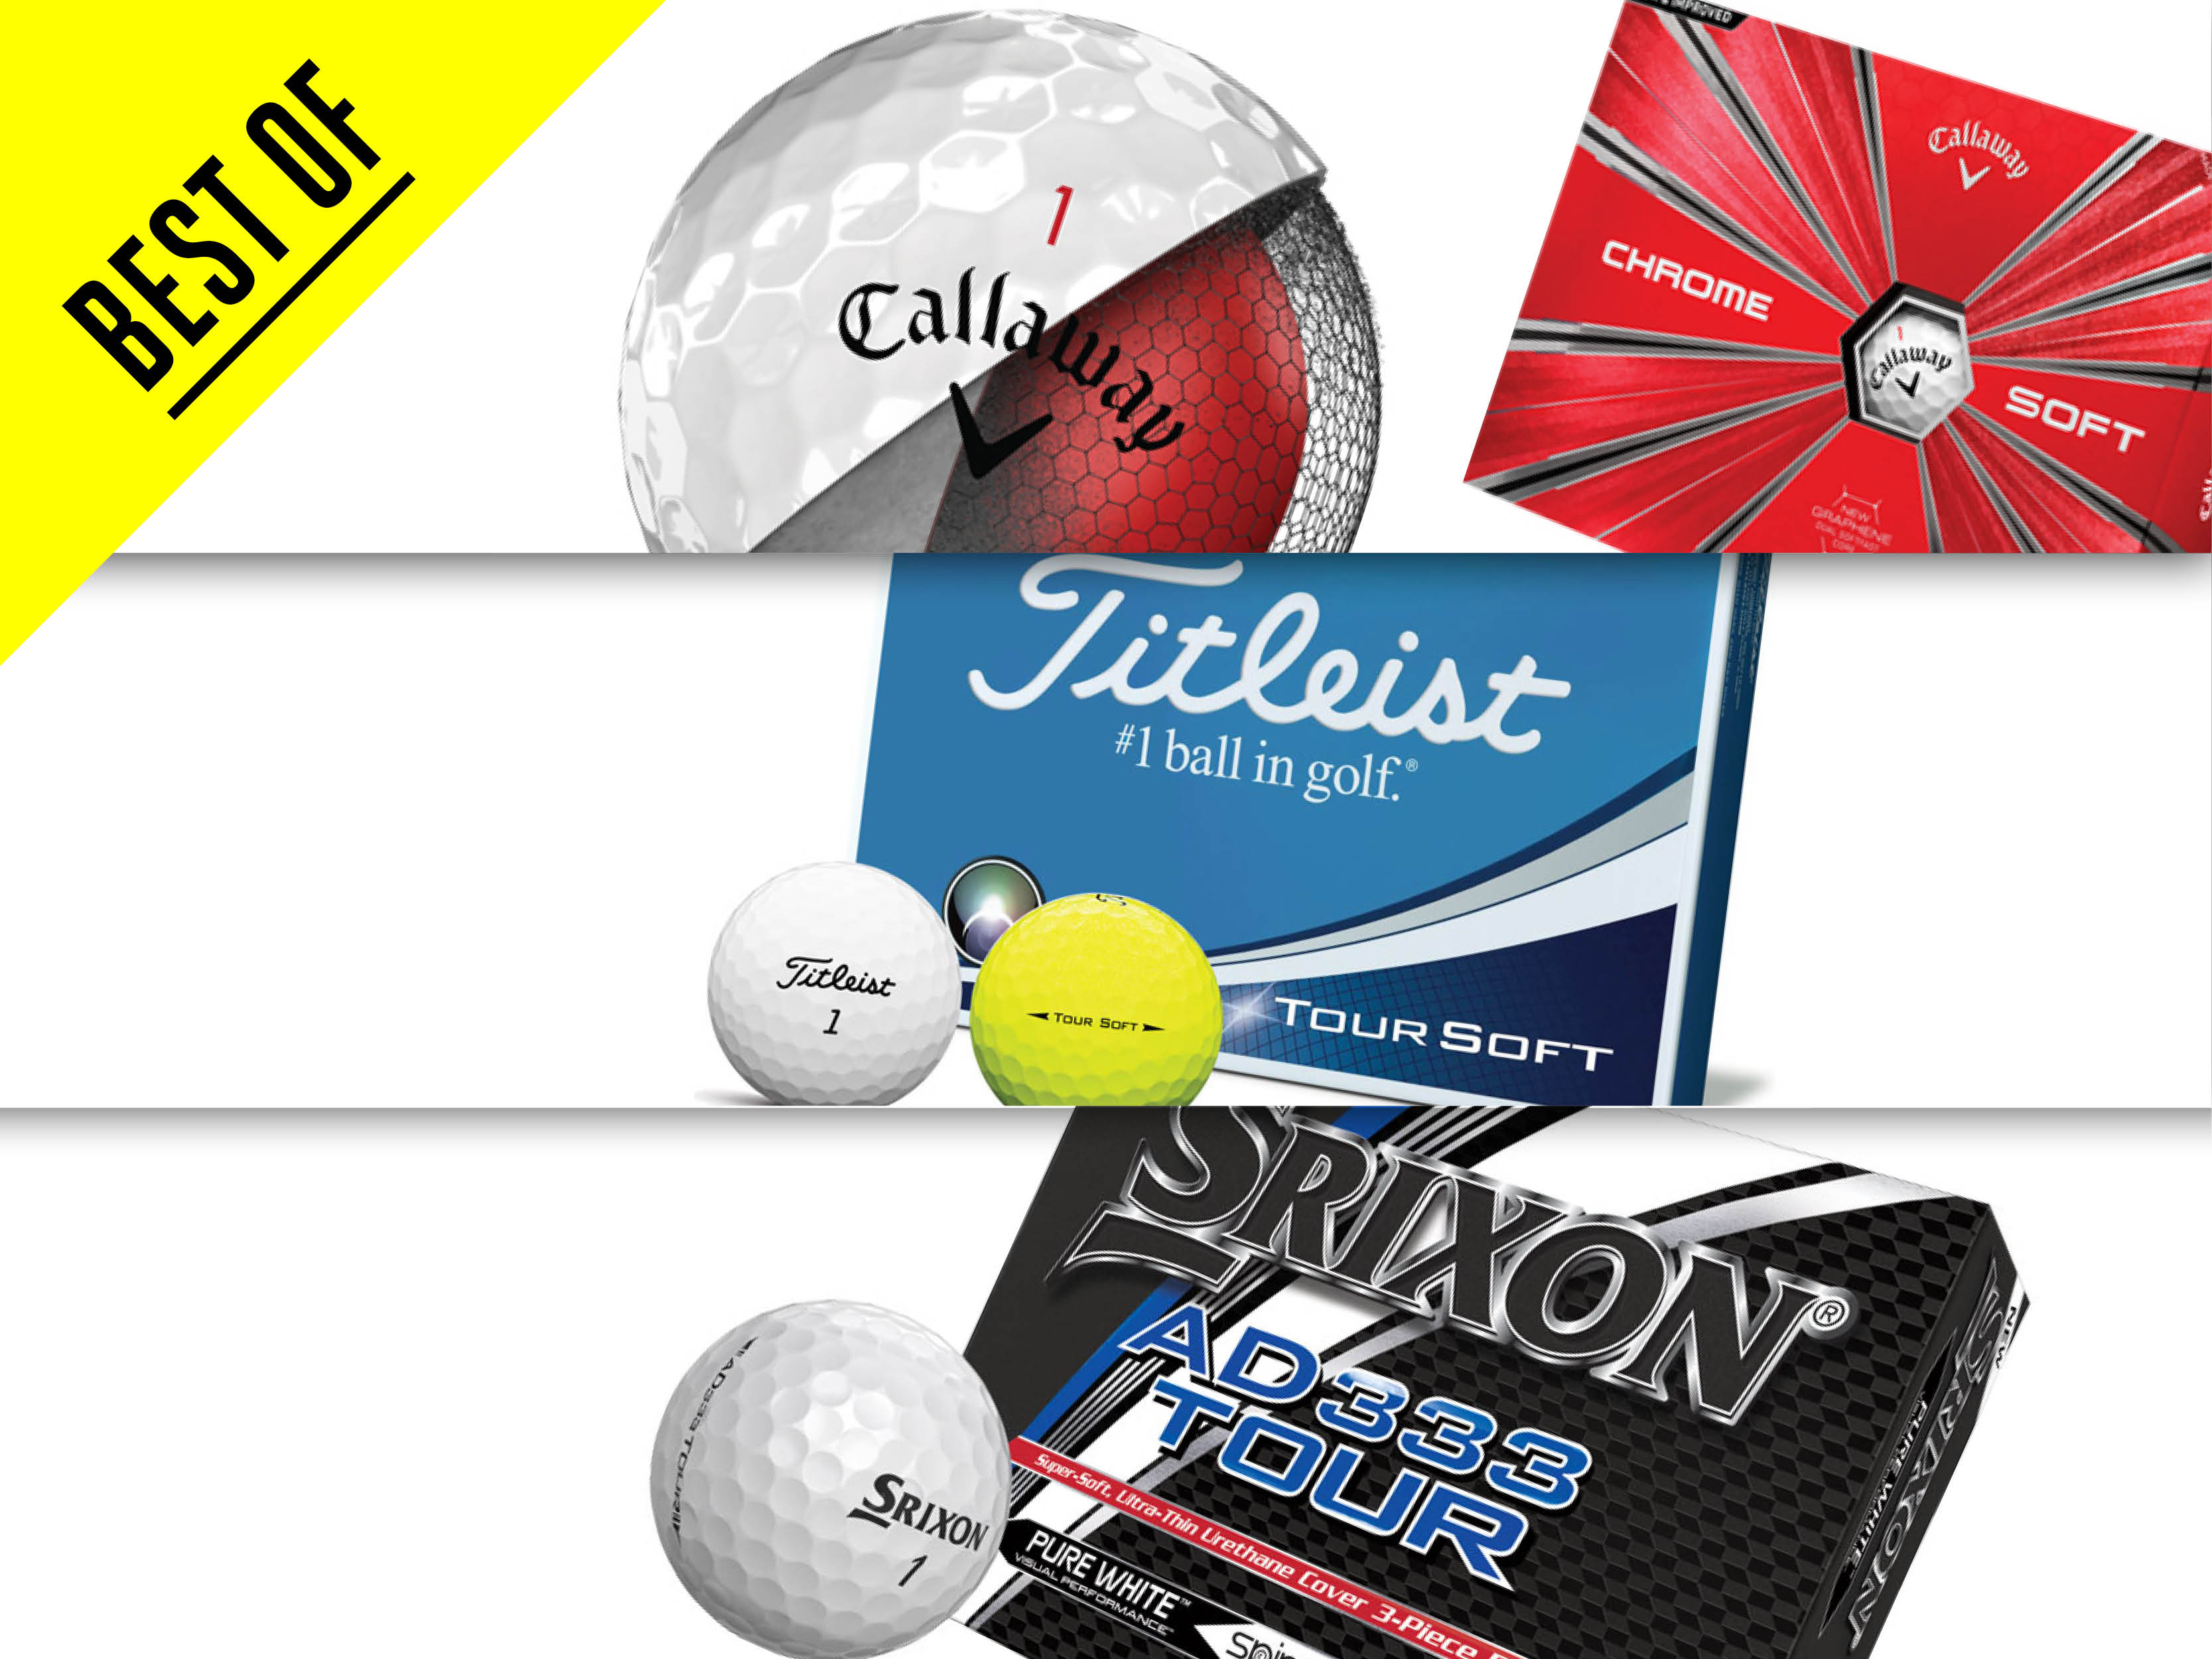 best mid price golf balls 2018 golf ball models worth. Black Bedroom Furniture Sets. Home Design Ideas